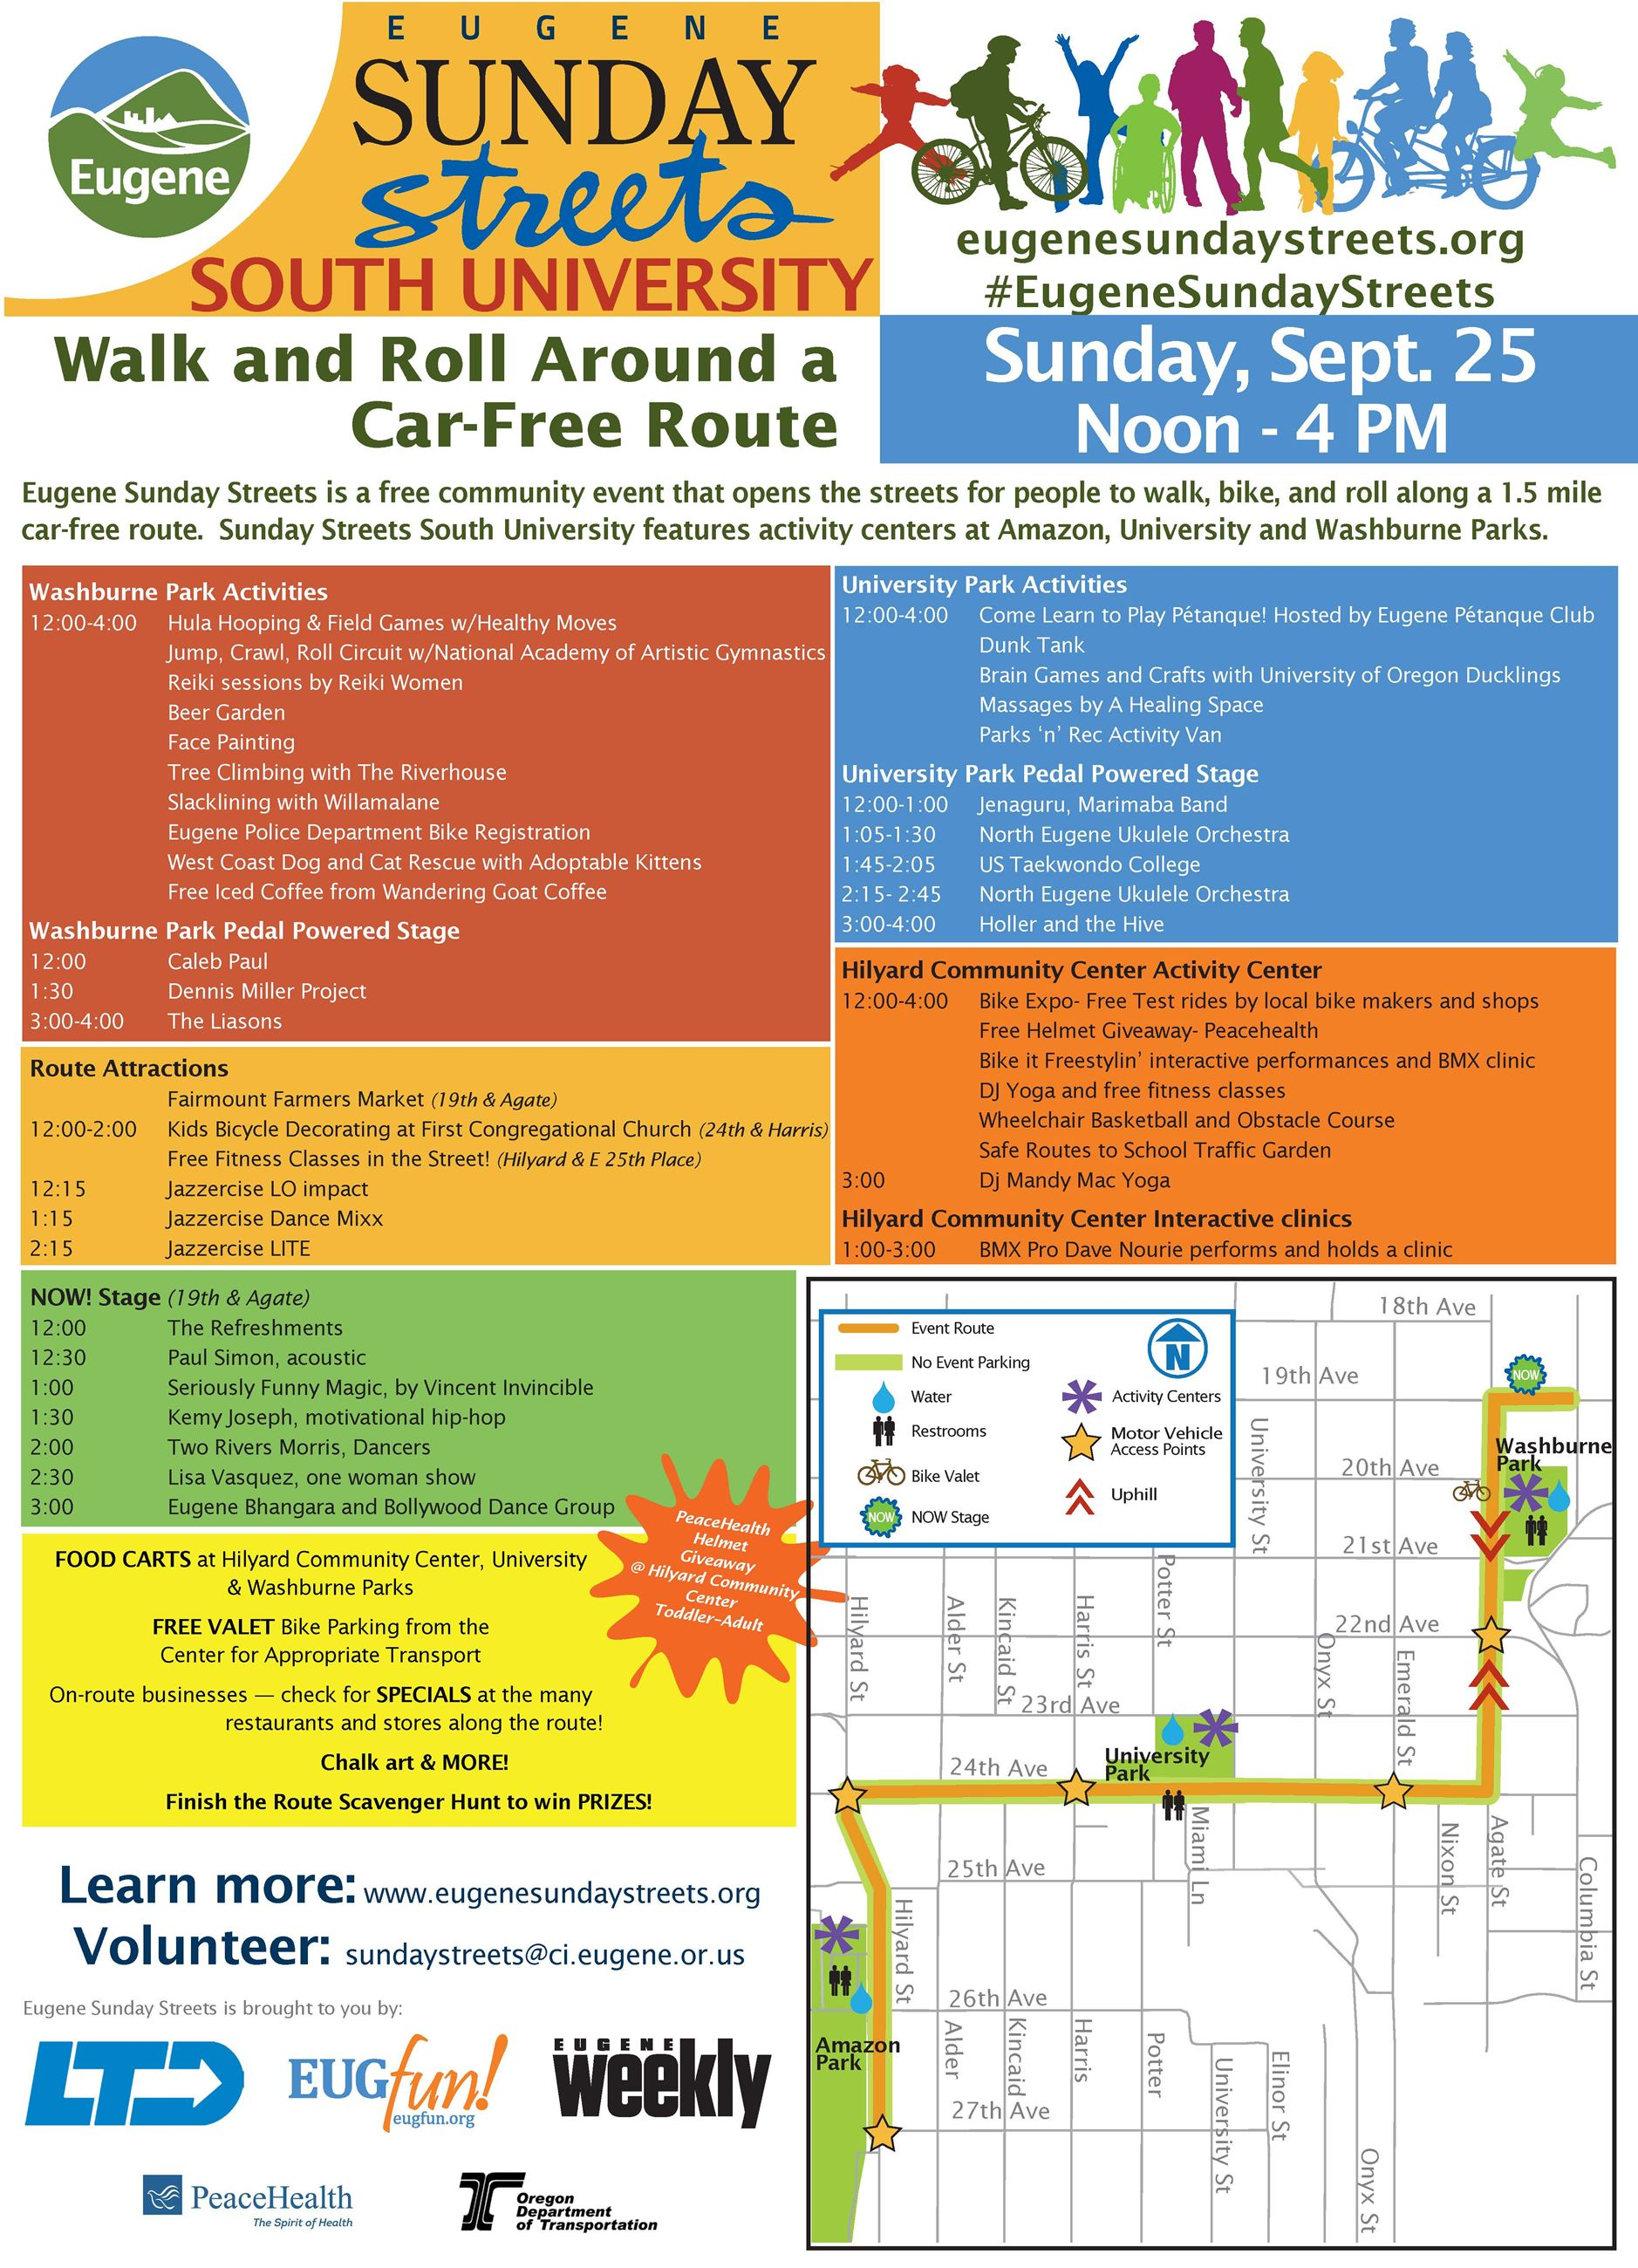 Eugene Sunday Streets South University Program and Schedule for 2016